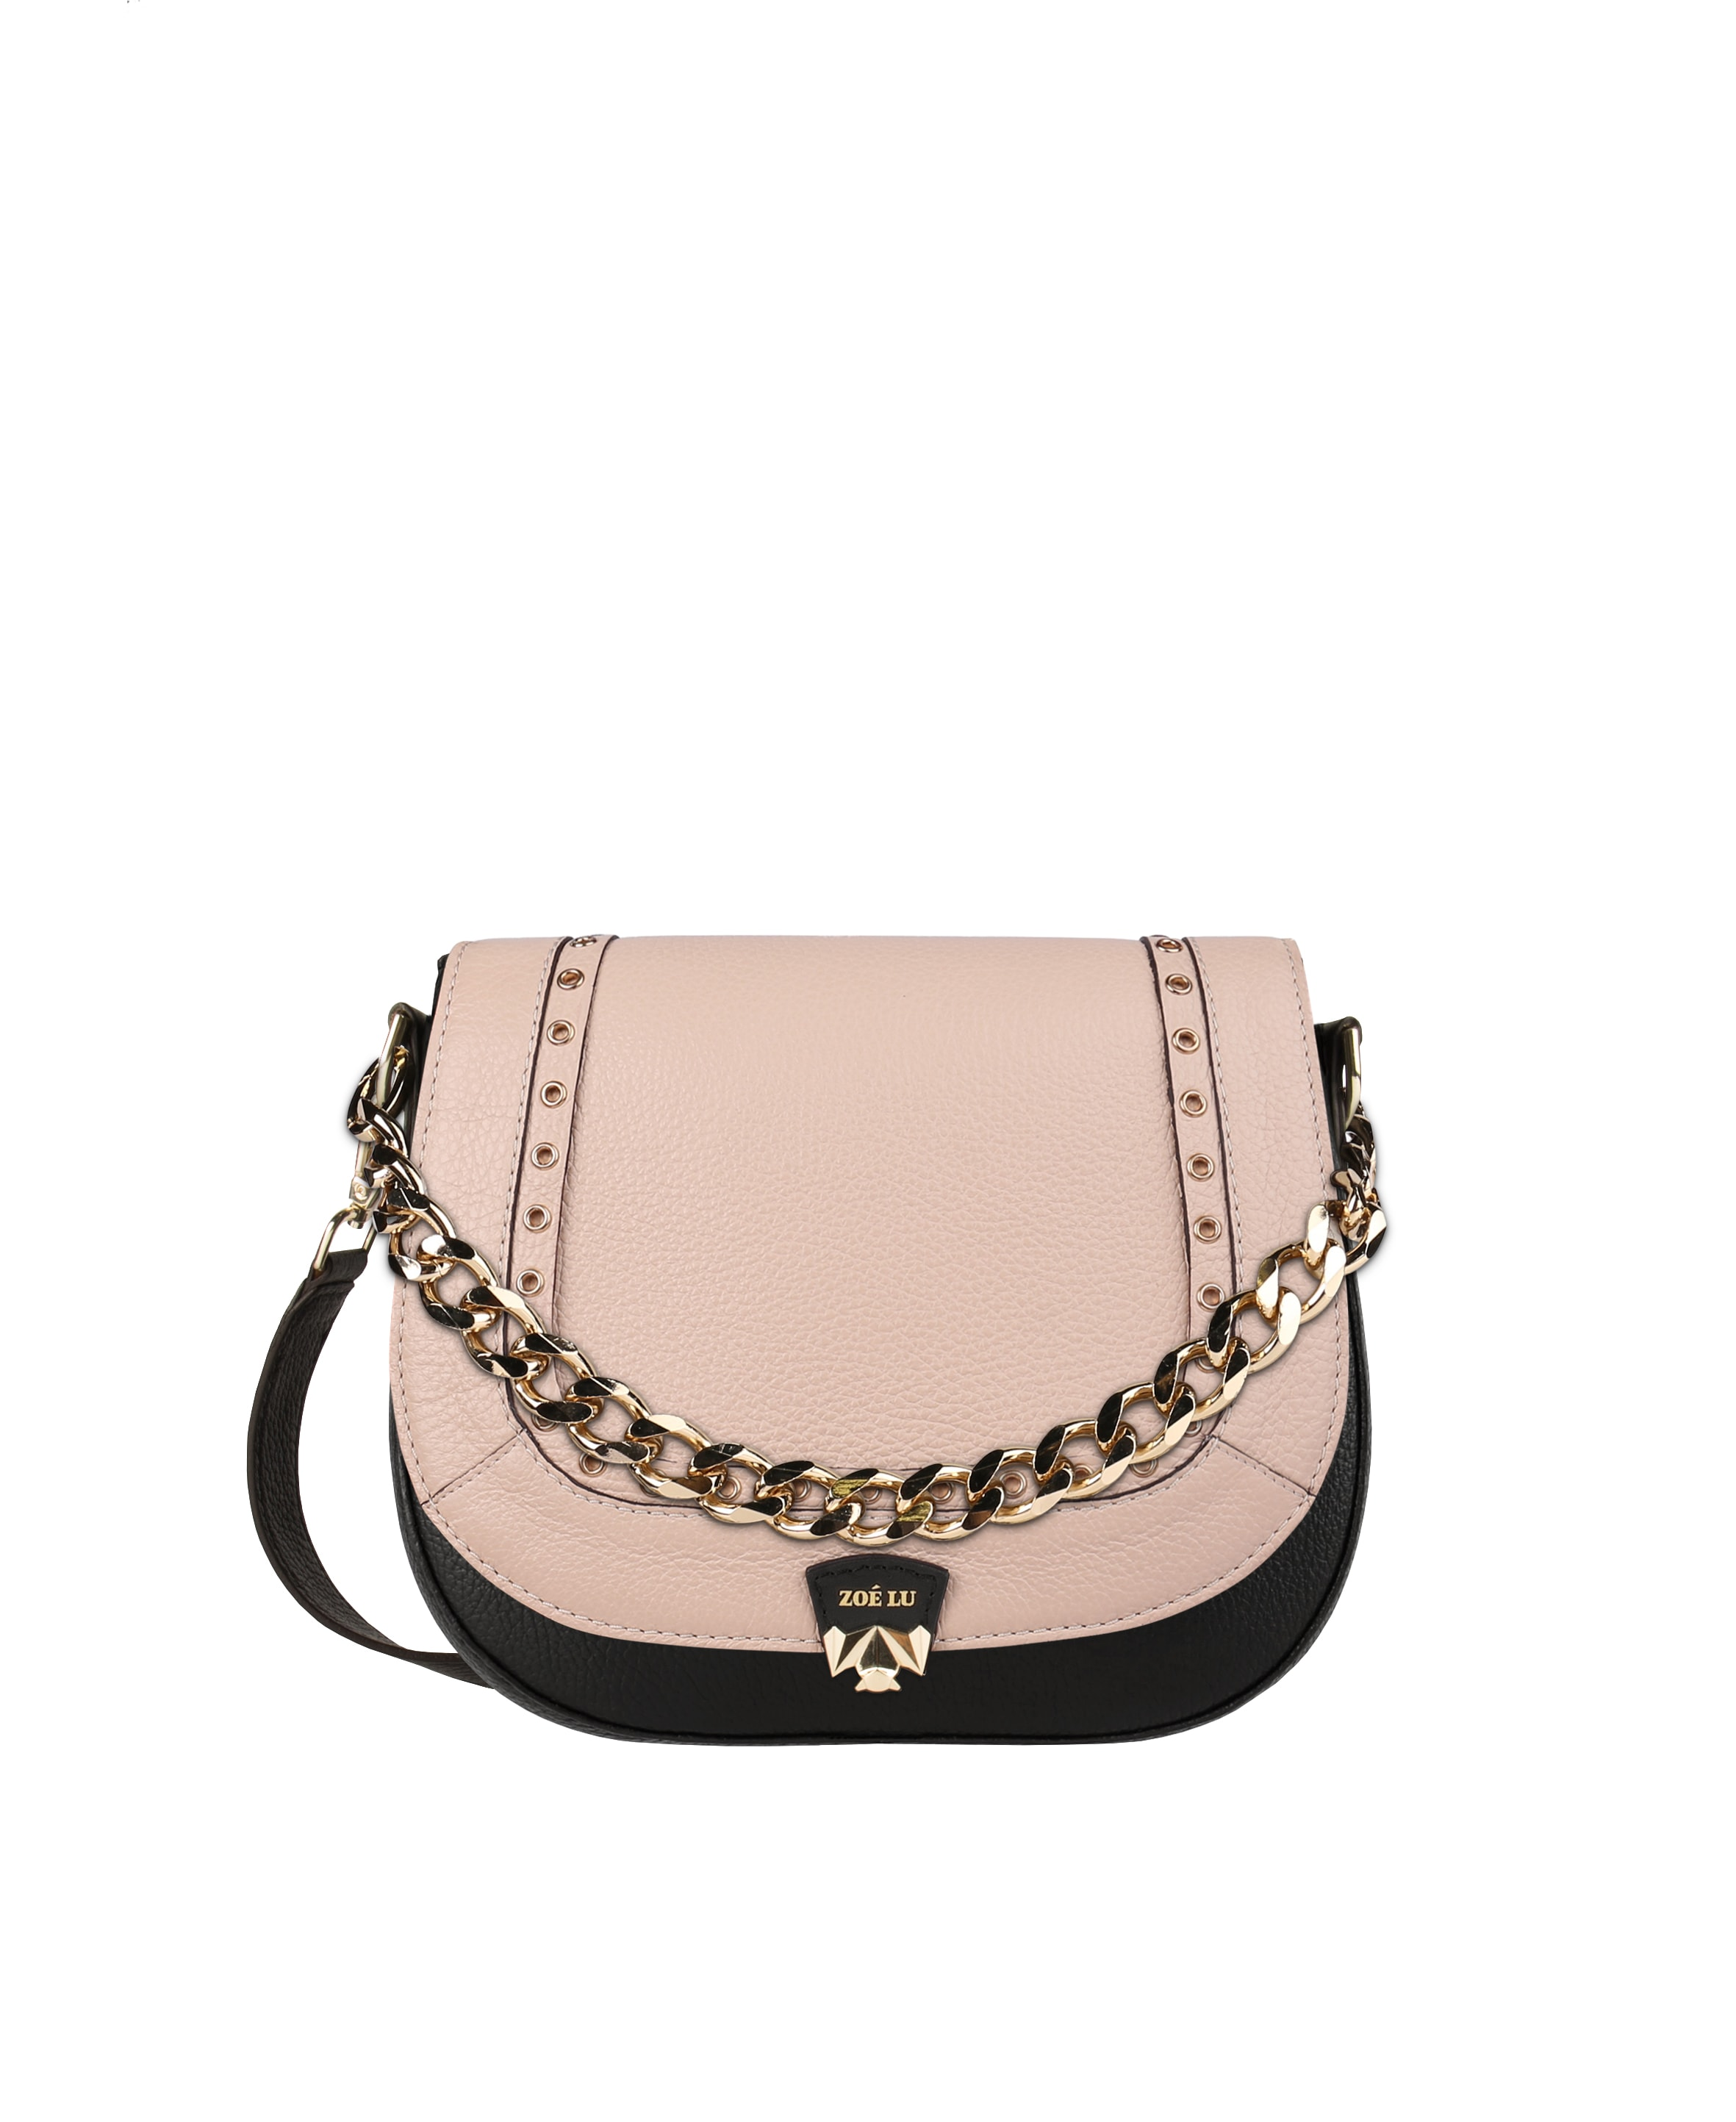 zoe-lu-tasche-bag-black-sure-about-nudepimp-up-gun-gold